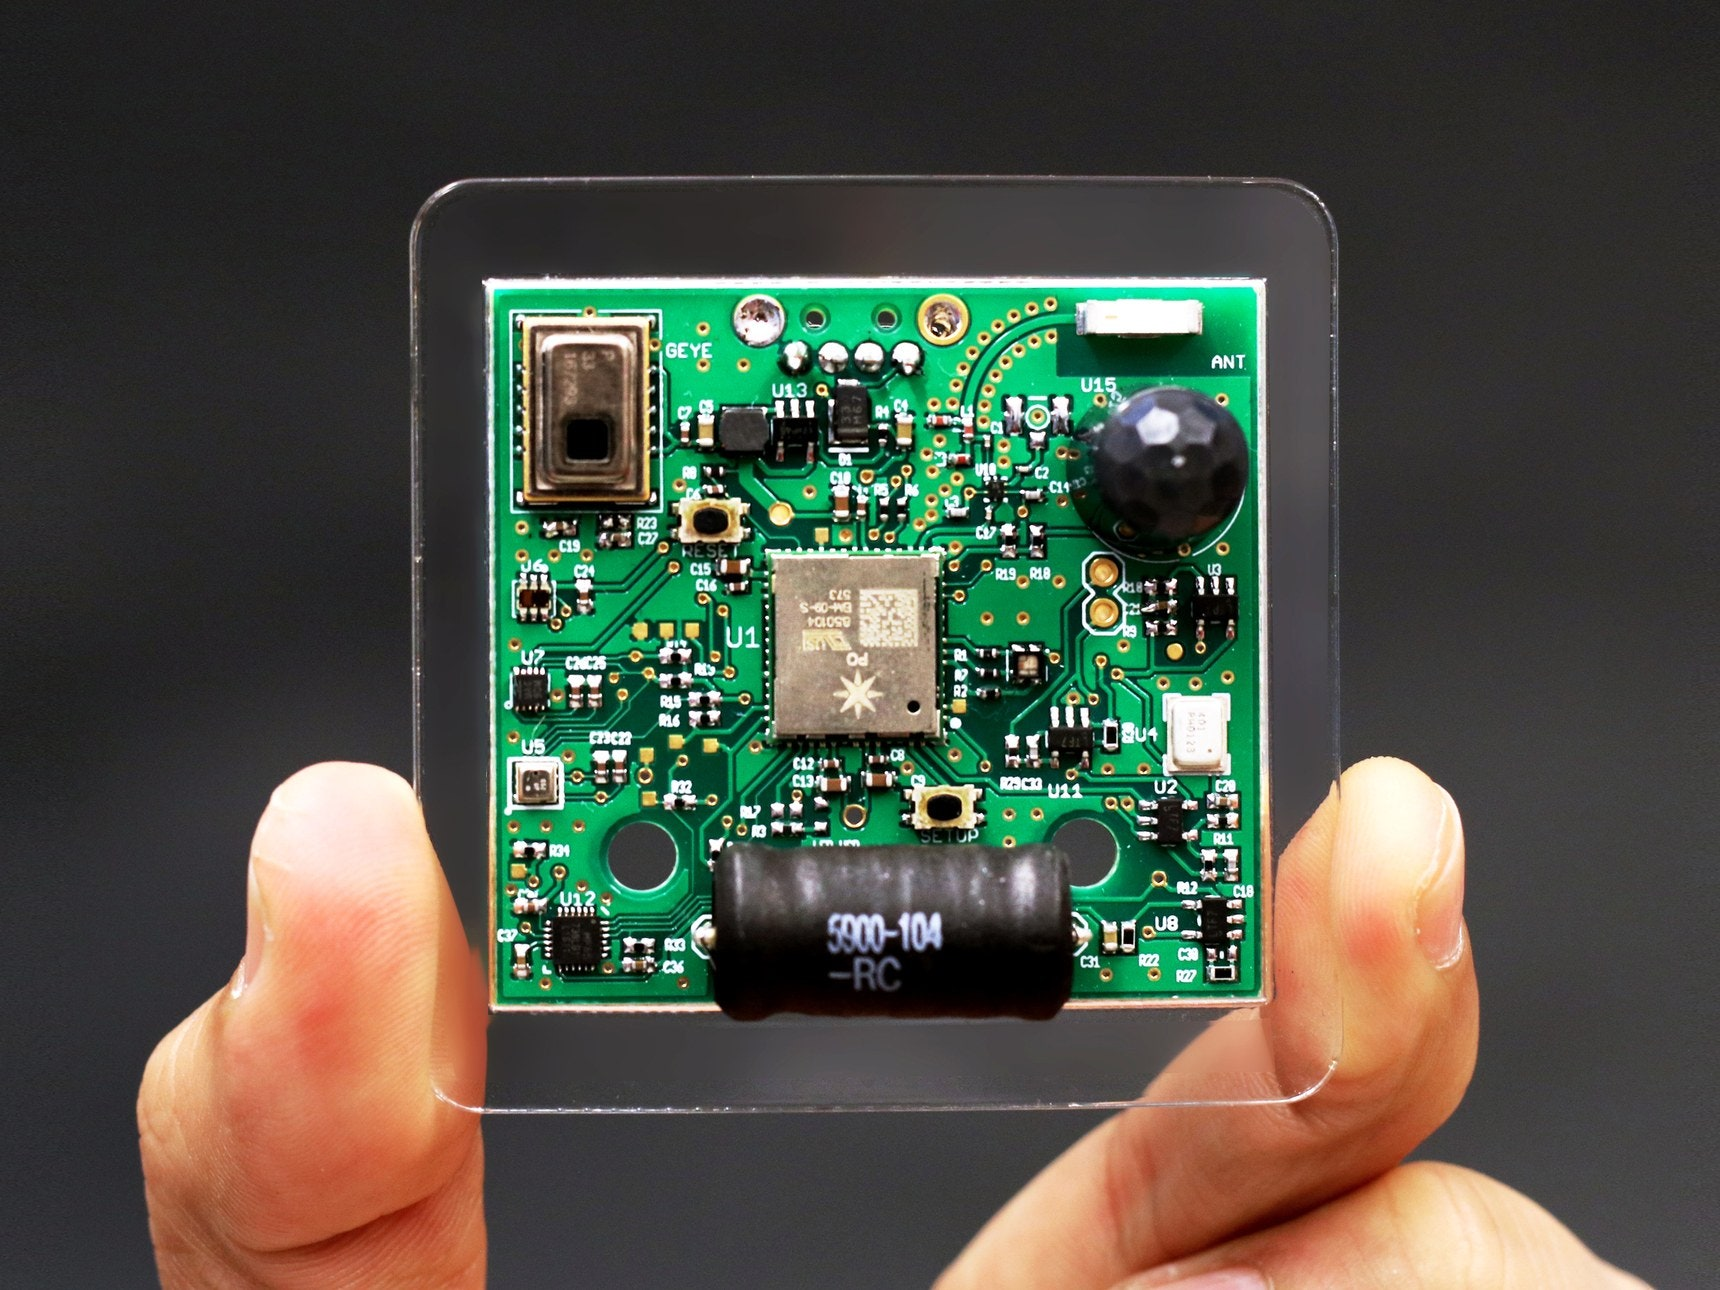 Sensor Smart Home Synthetic Sensors Is A Sensor That Could Soon Make Homes